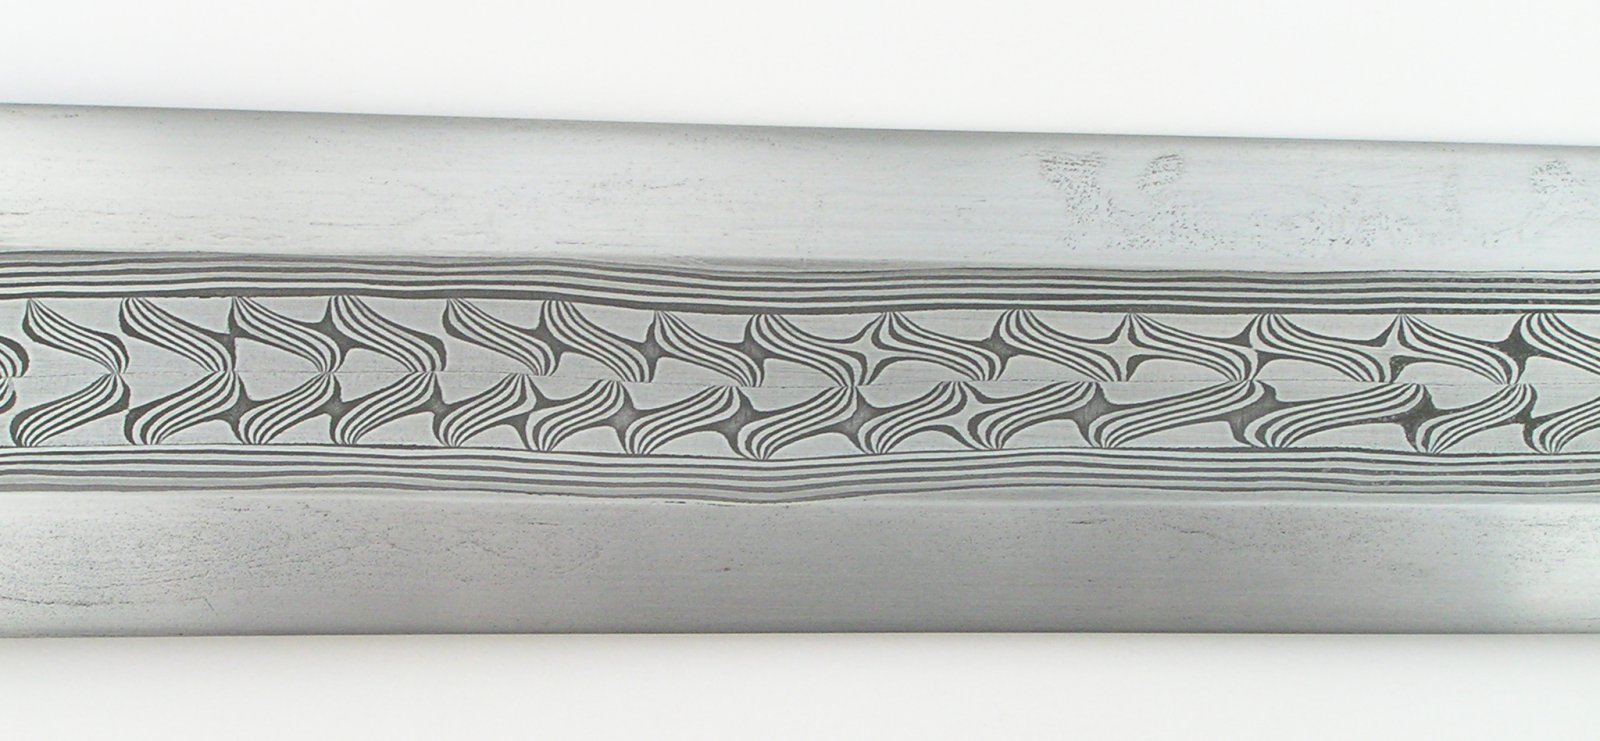 Pattern Welded Sword Magnificent Inspiration